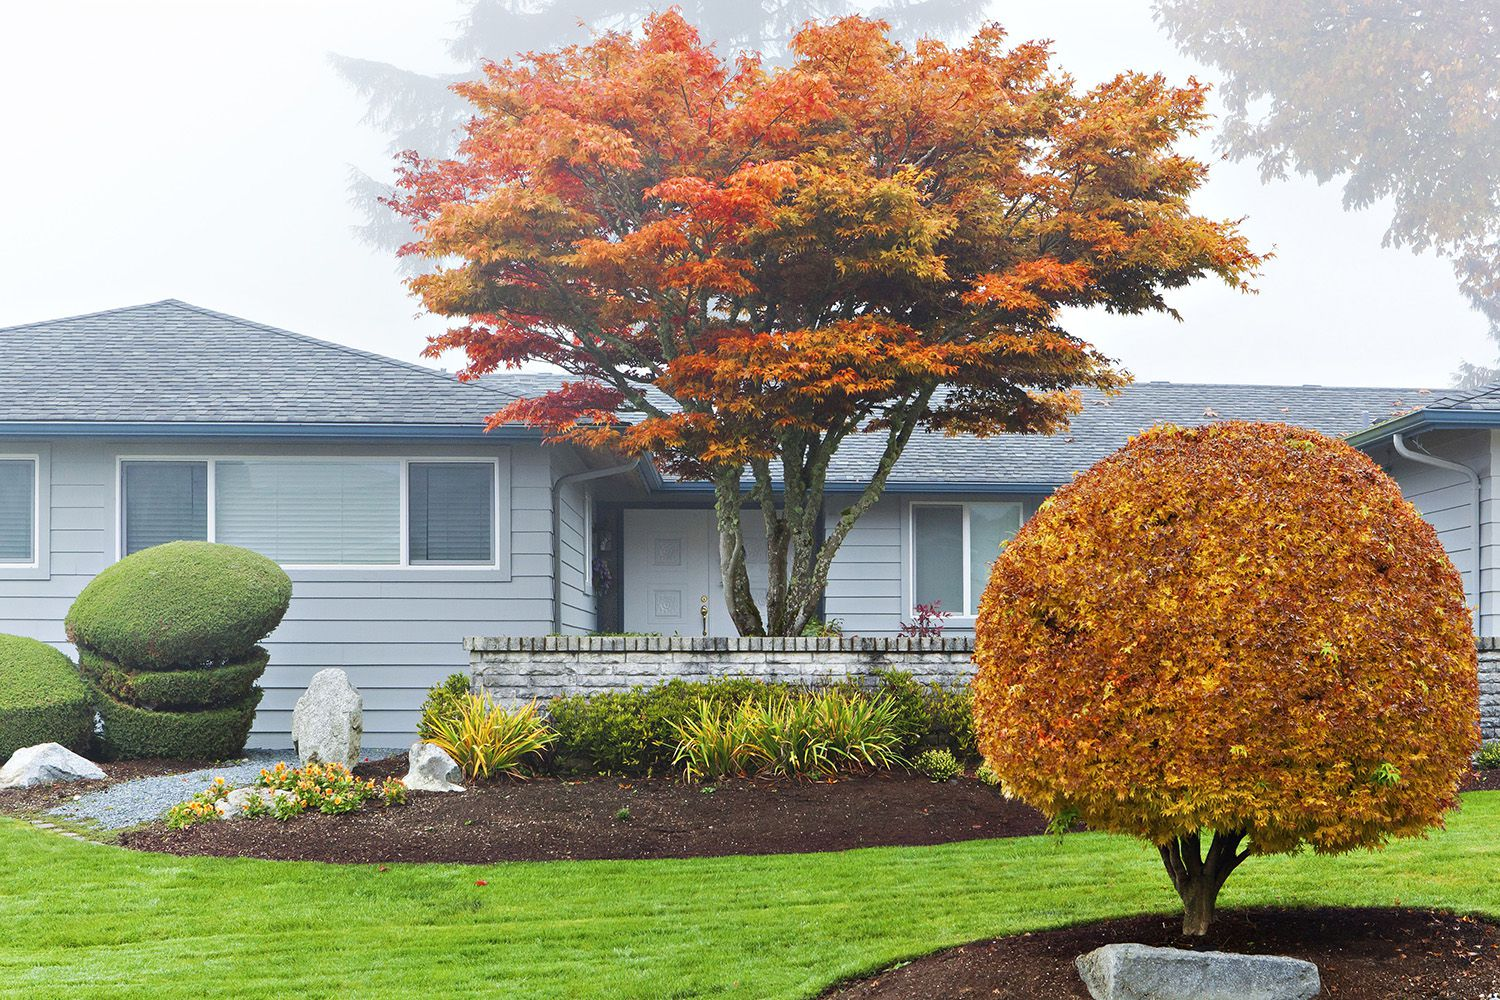 10 Tips To Help Sell A Home In Autumn